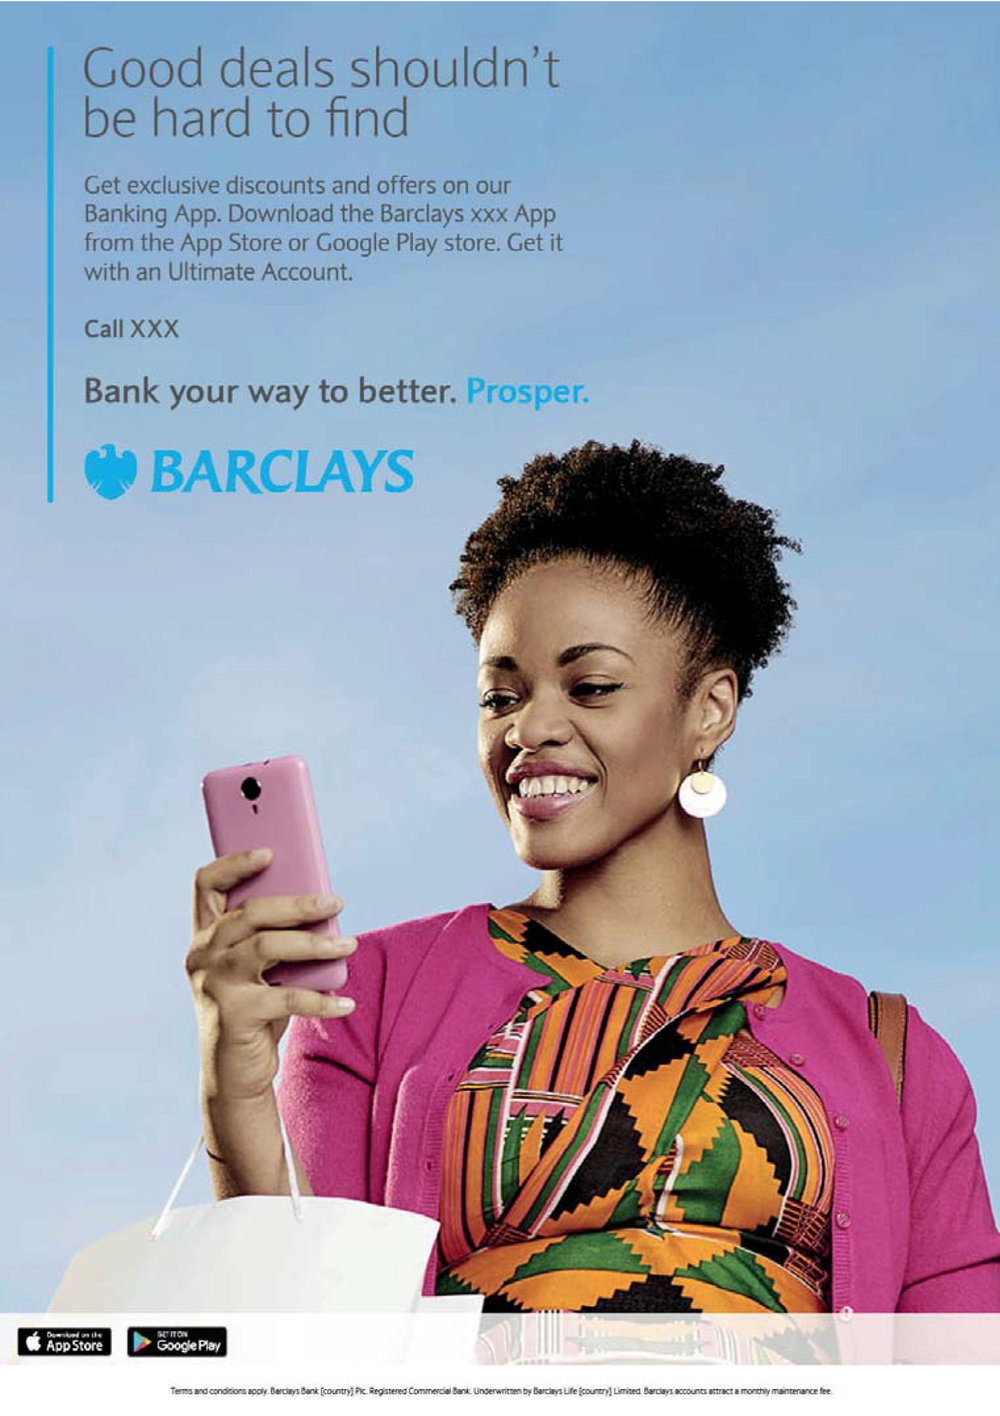 Barclays Personal Banking Campaign Toolkit 26 APRIL-90.jpg